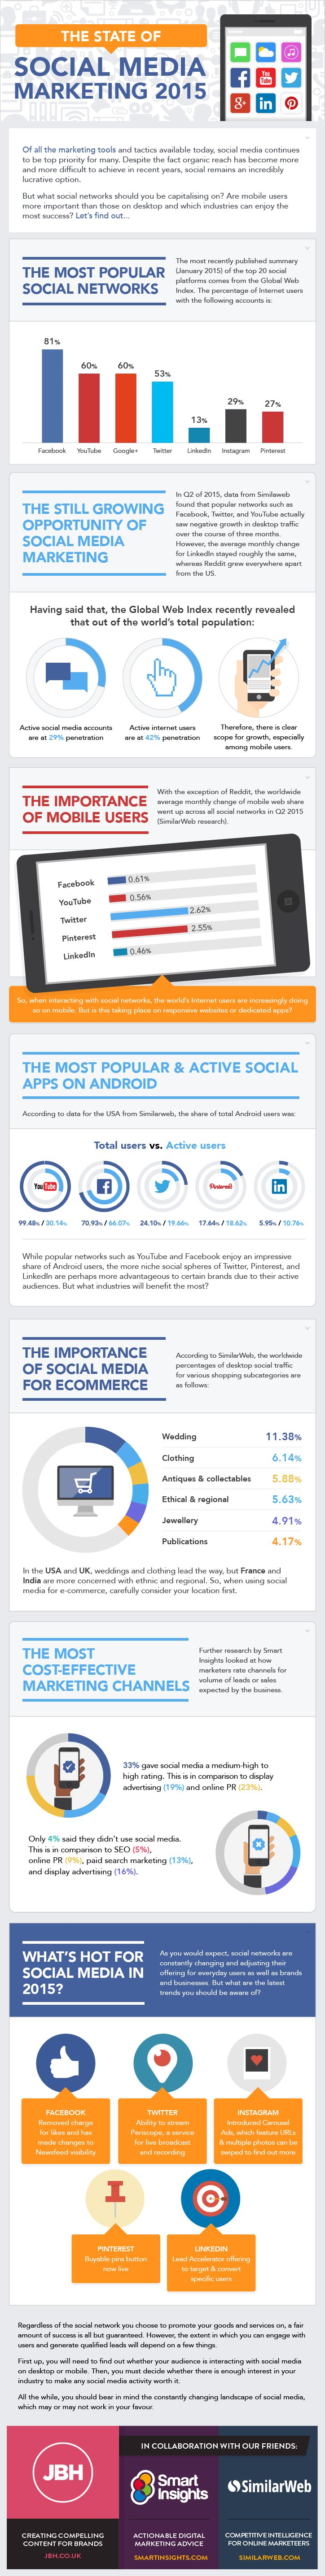 Where Are The Growing Social Media Marketing Opportunities In 2015? #infographic